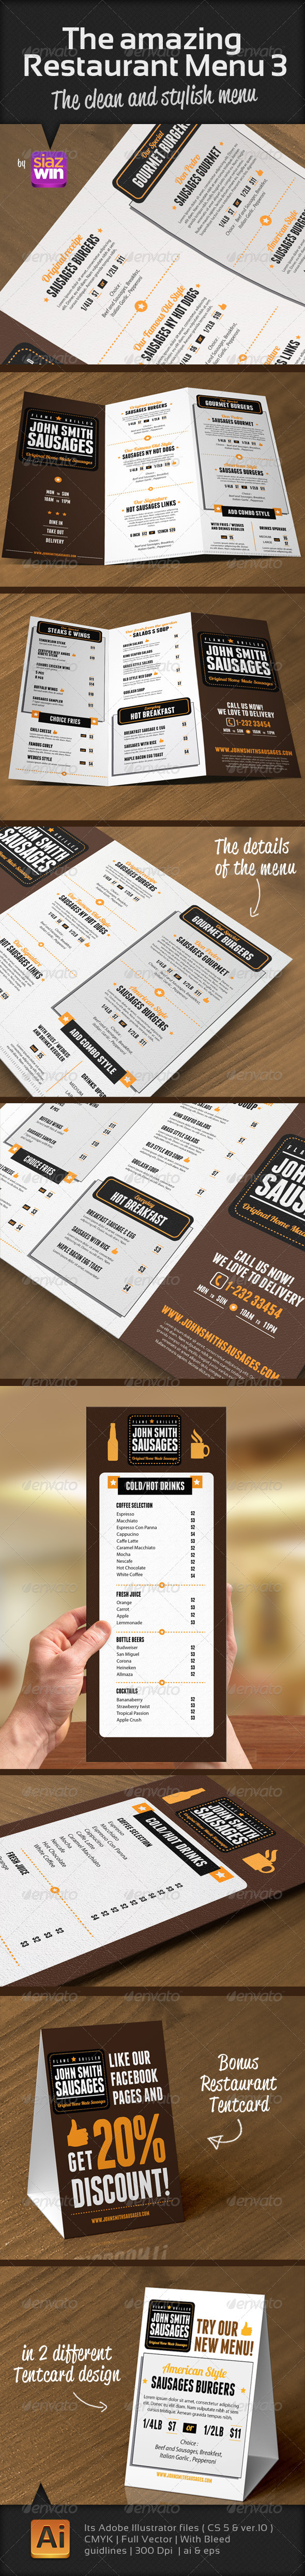 The Amazing Restaurant Menu 3 - Food Menus Print Templates